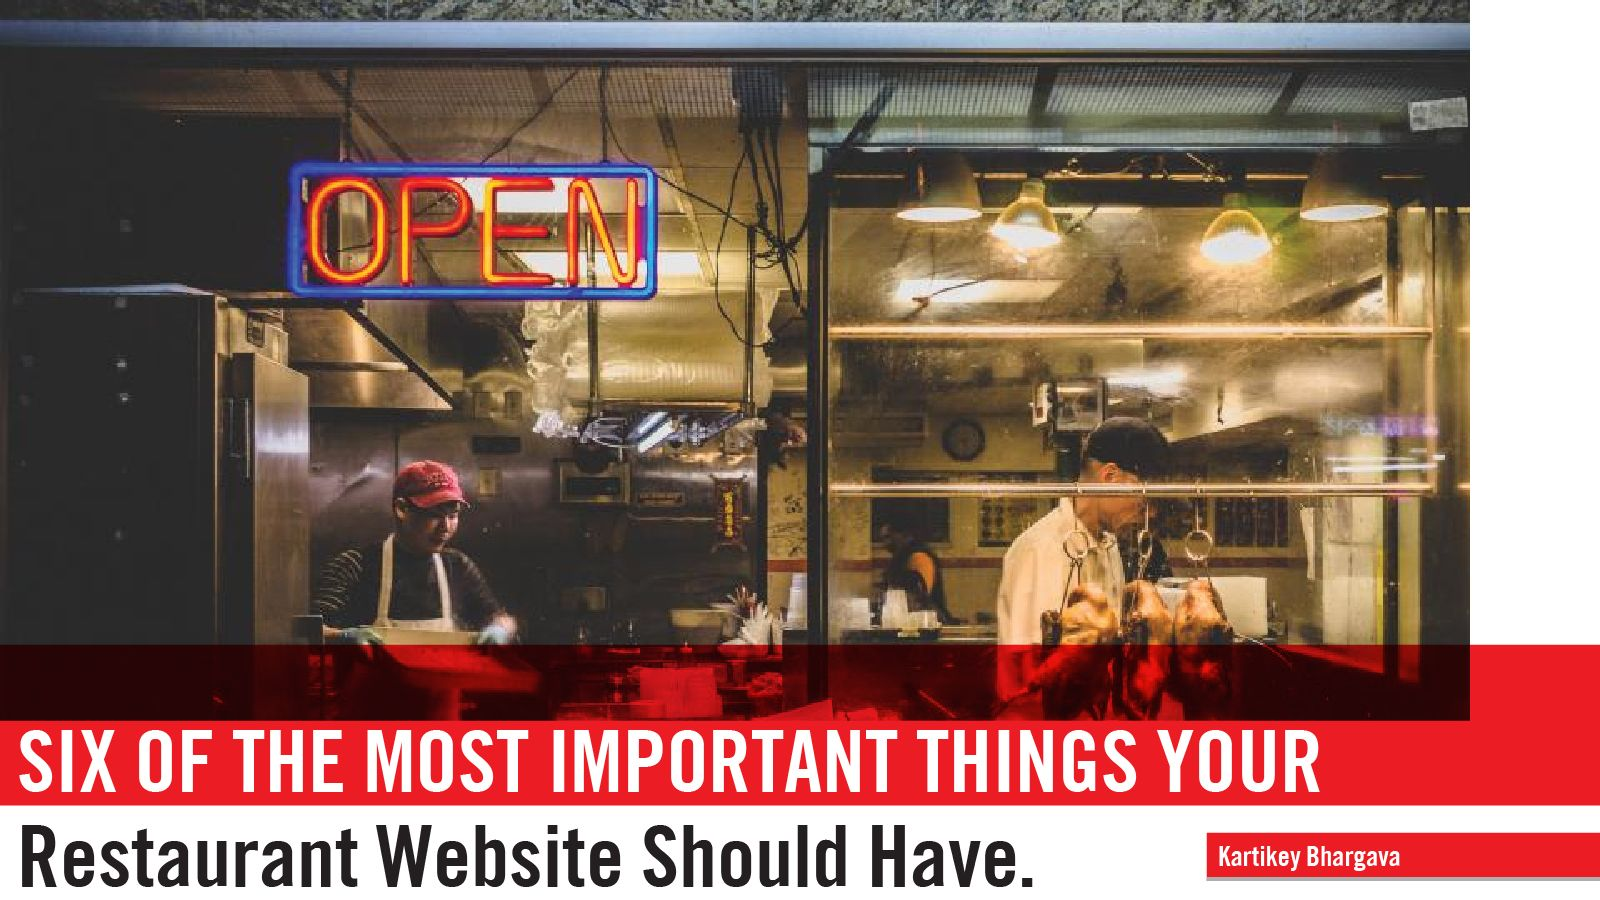 6 MOST IMPORTANT THINGS YOUR RESTAURANT WEBSITE SHOULD HAVE